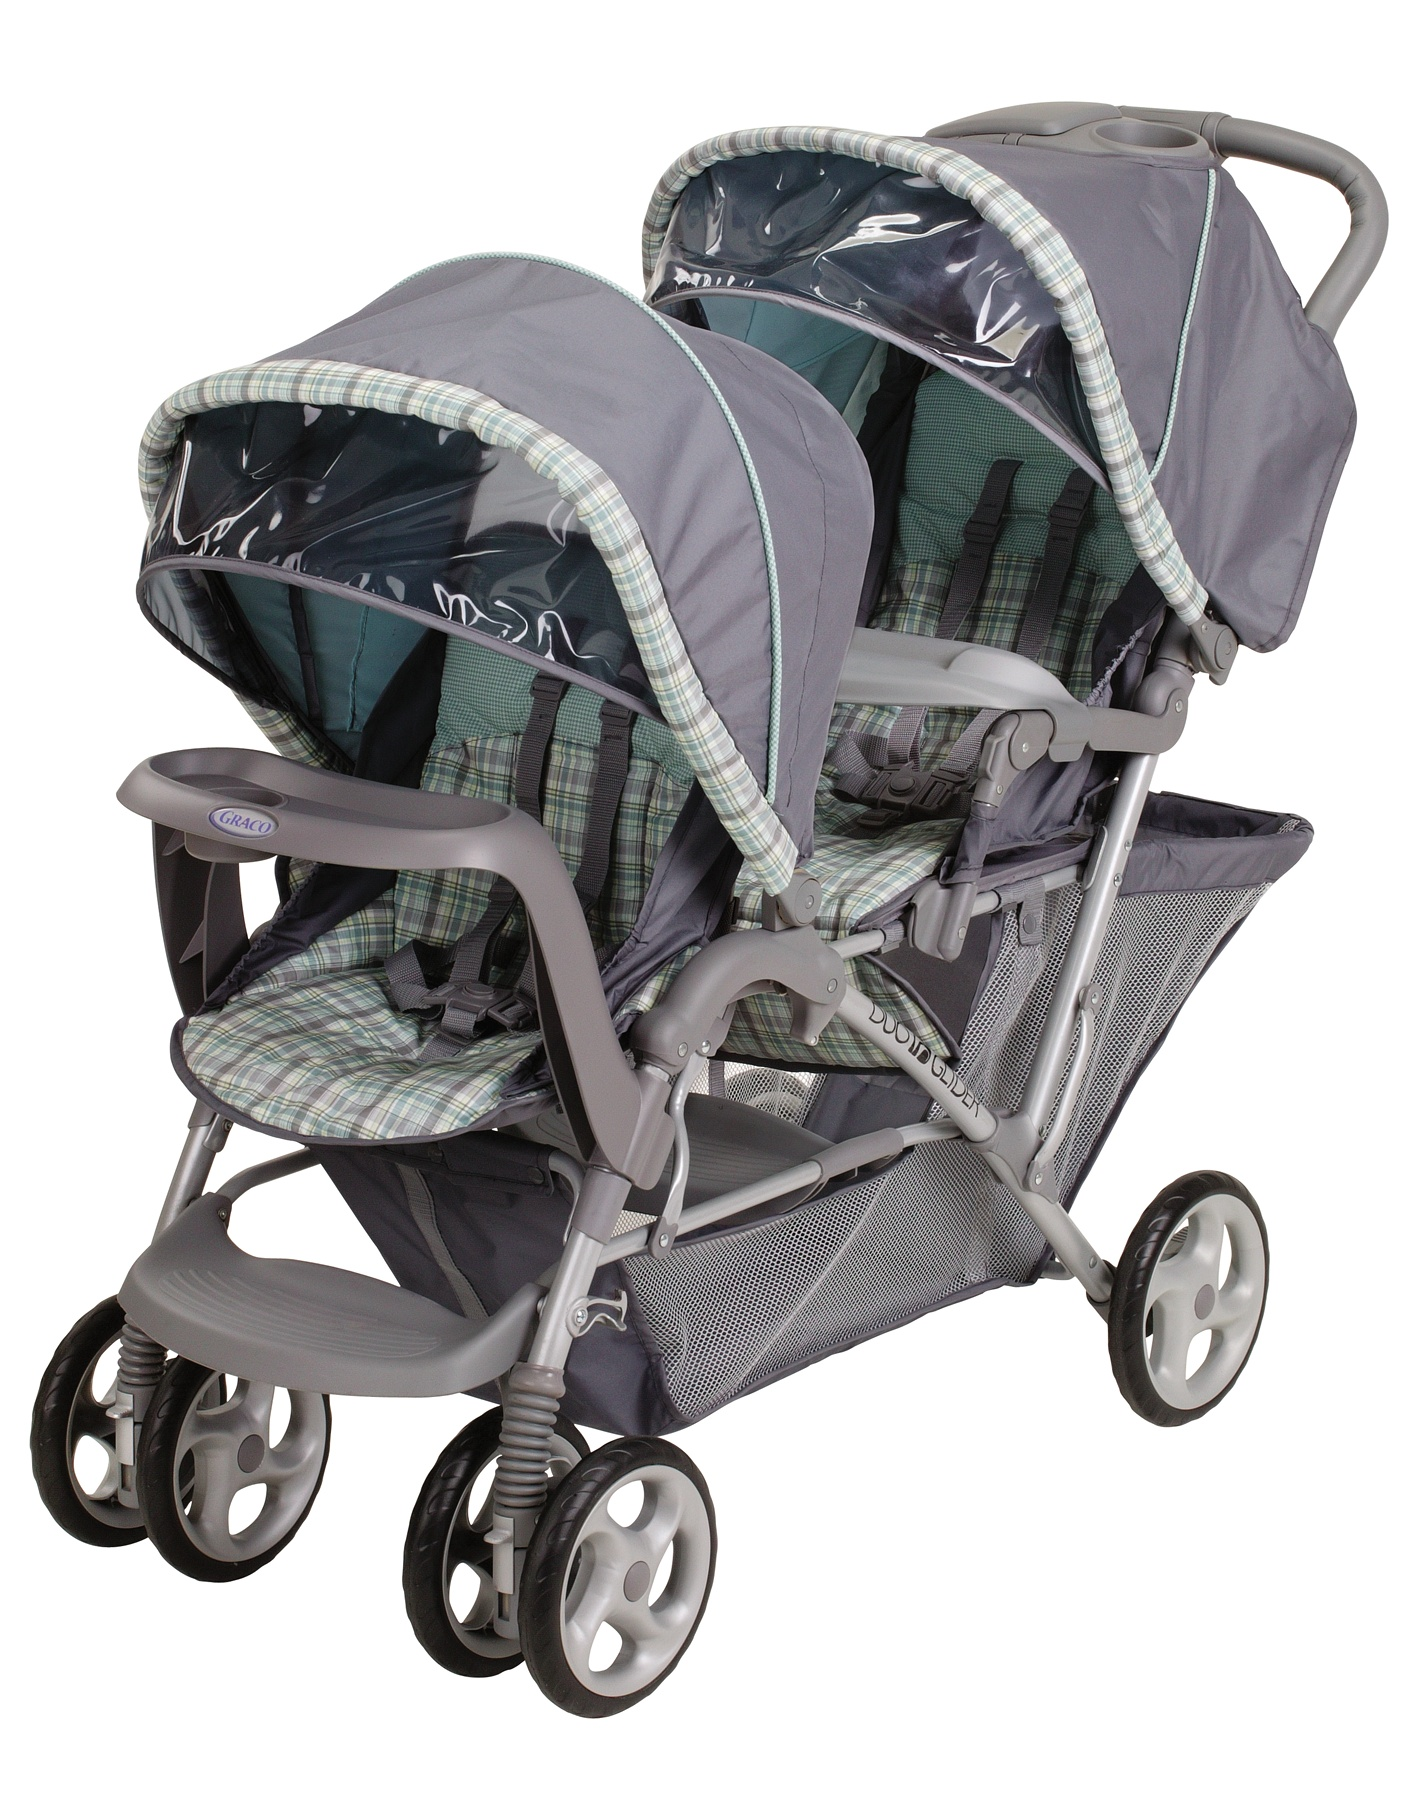 6L12WSH3�Graco DuoGlider LX Double Stroller (Wilshire) | 6L12WSH3